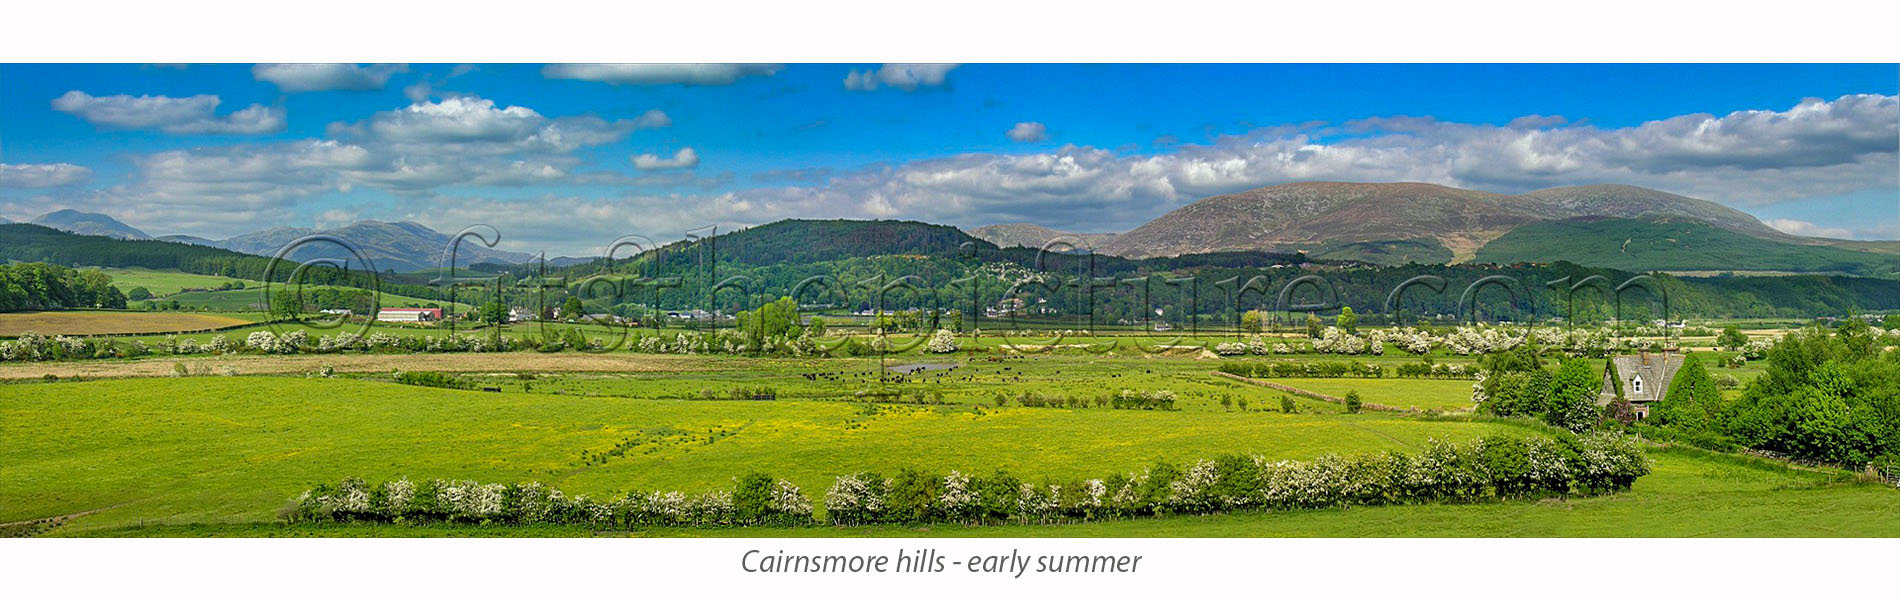 cairnsmore_hills__early_summer.jpg